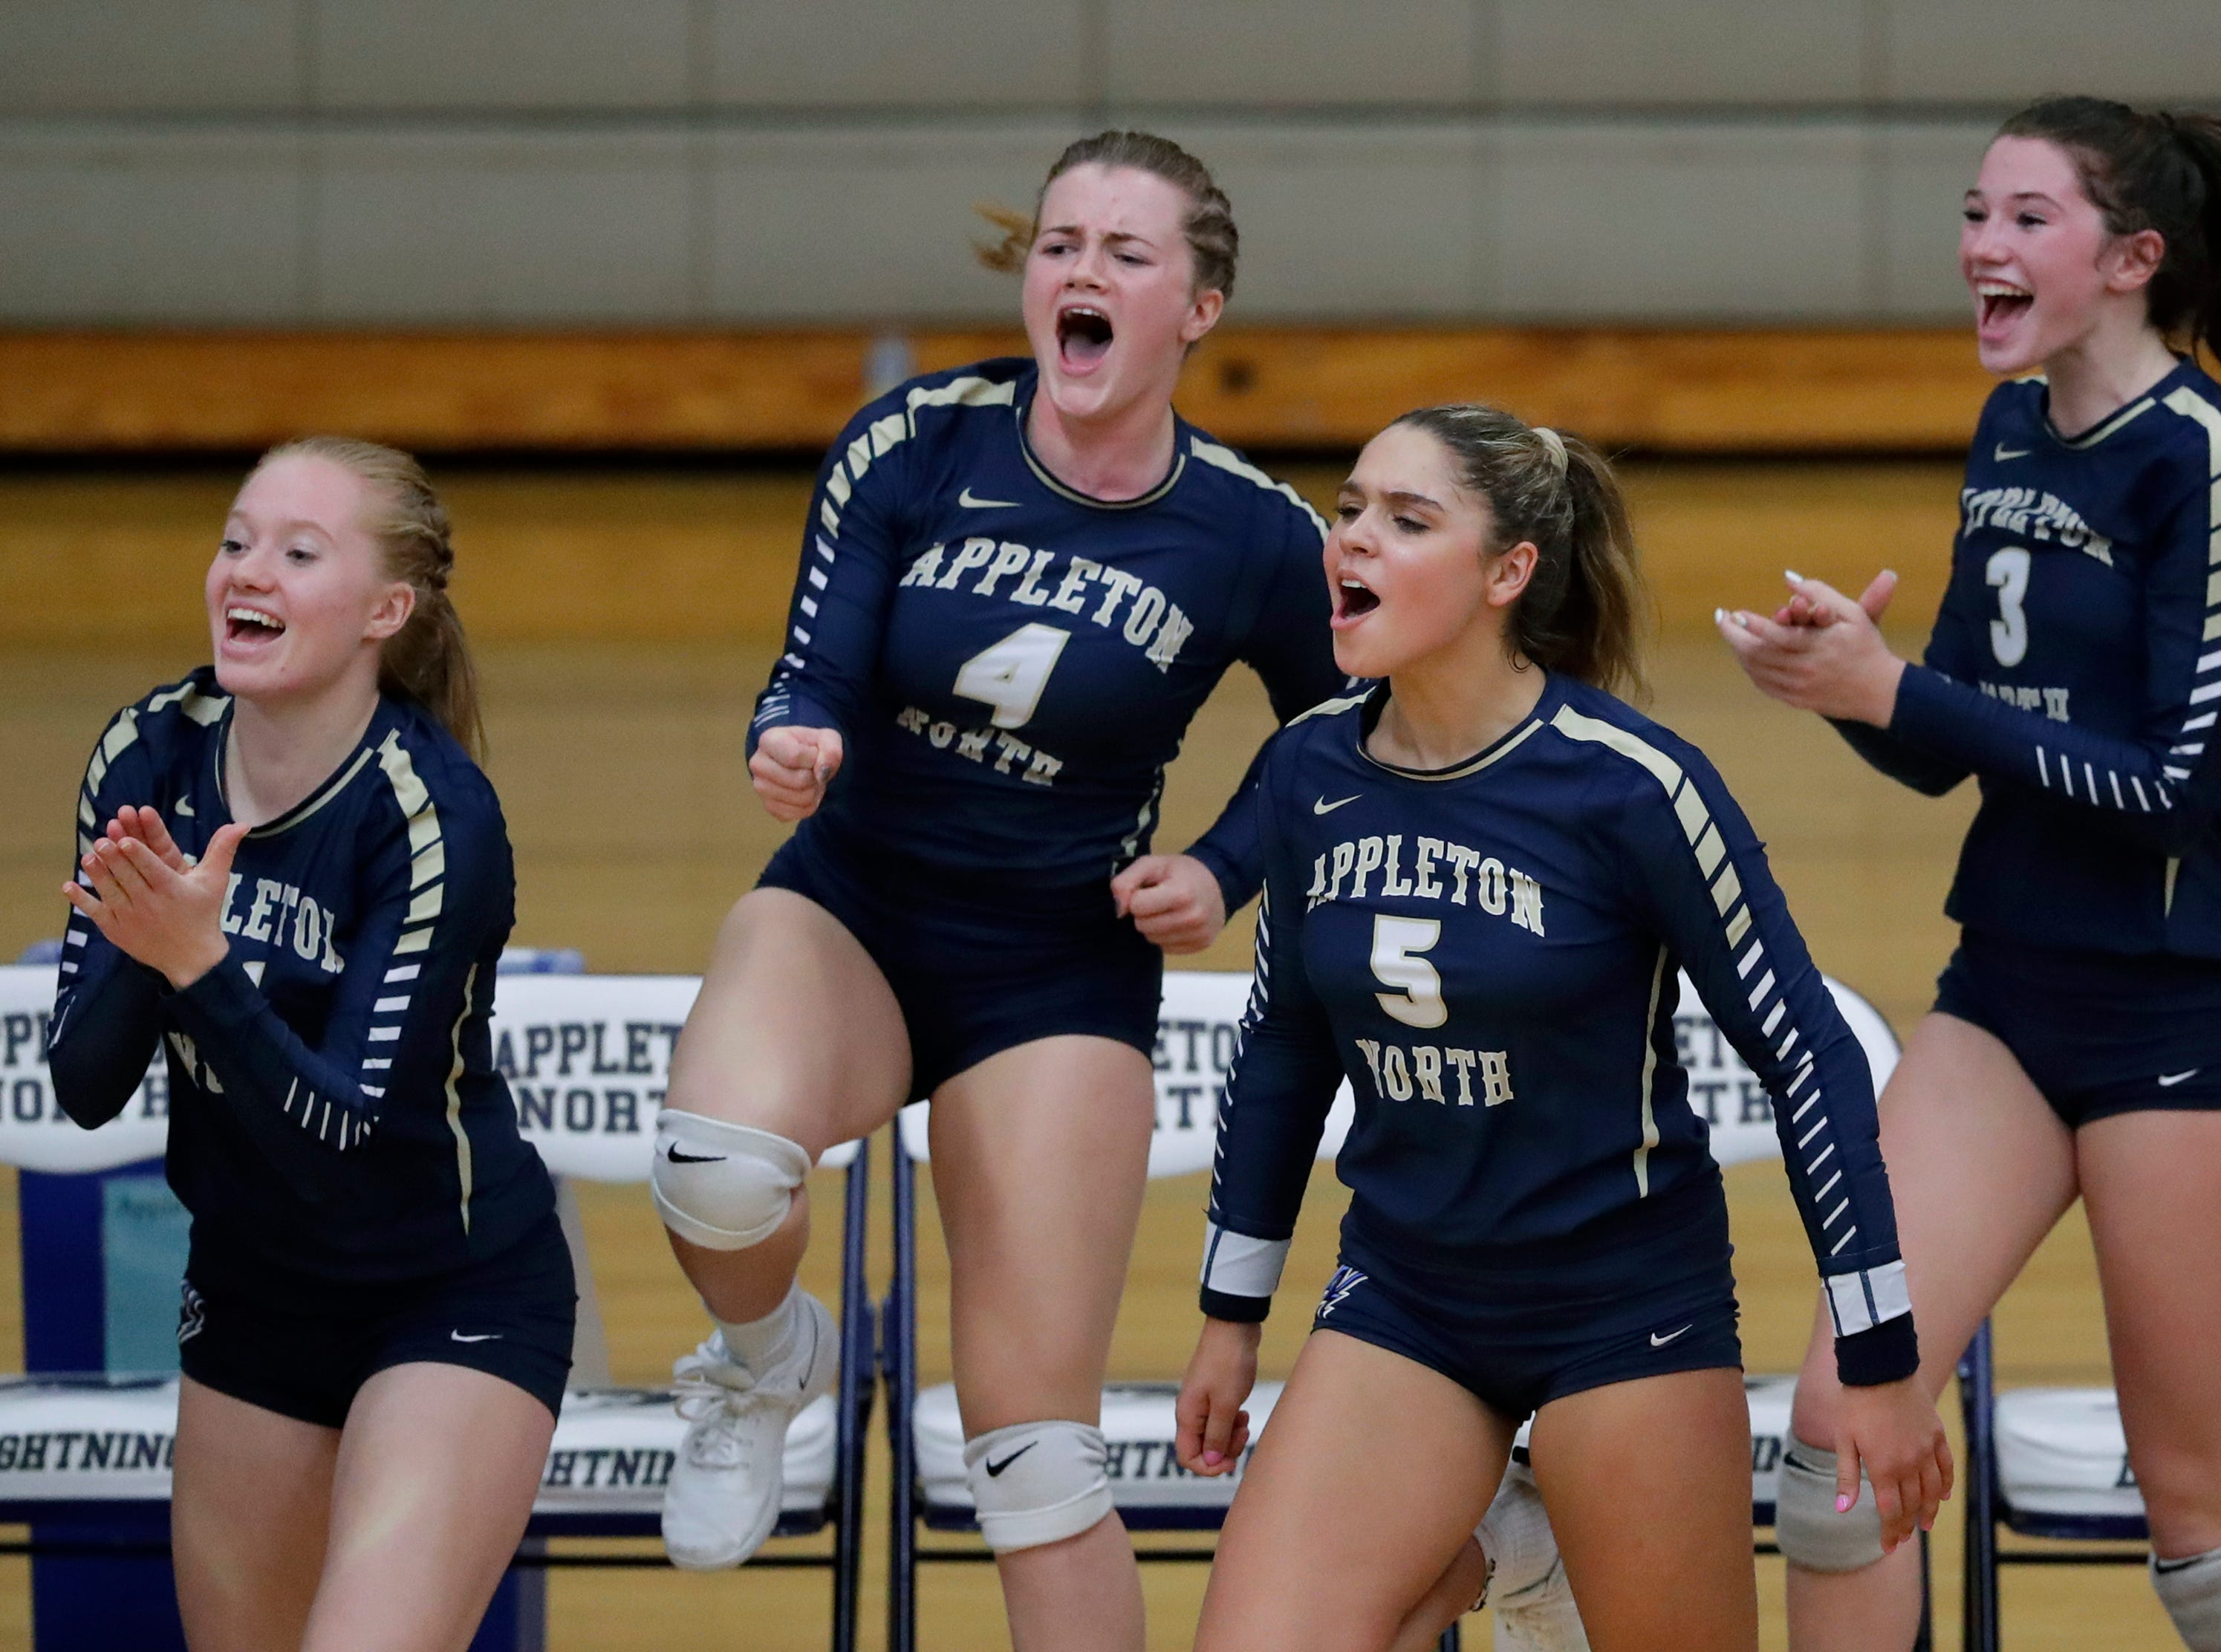 Appleton North High School's players celebrate winning a point against Kimberly High School during their girls volleyball match Thursday, Sept. 27, 2018, in Appleton, Wis. Dan Powers/USA TODAY NETWORK-Wisconsin